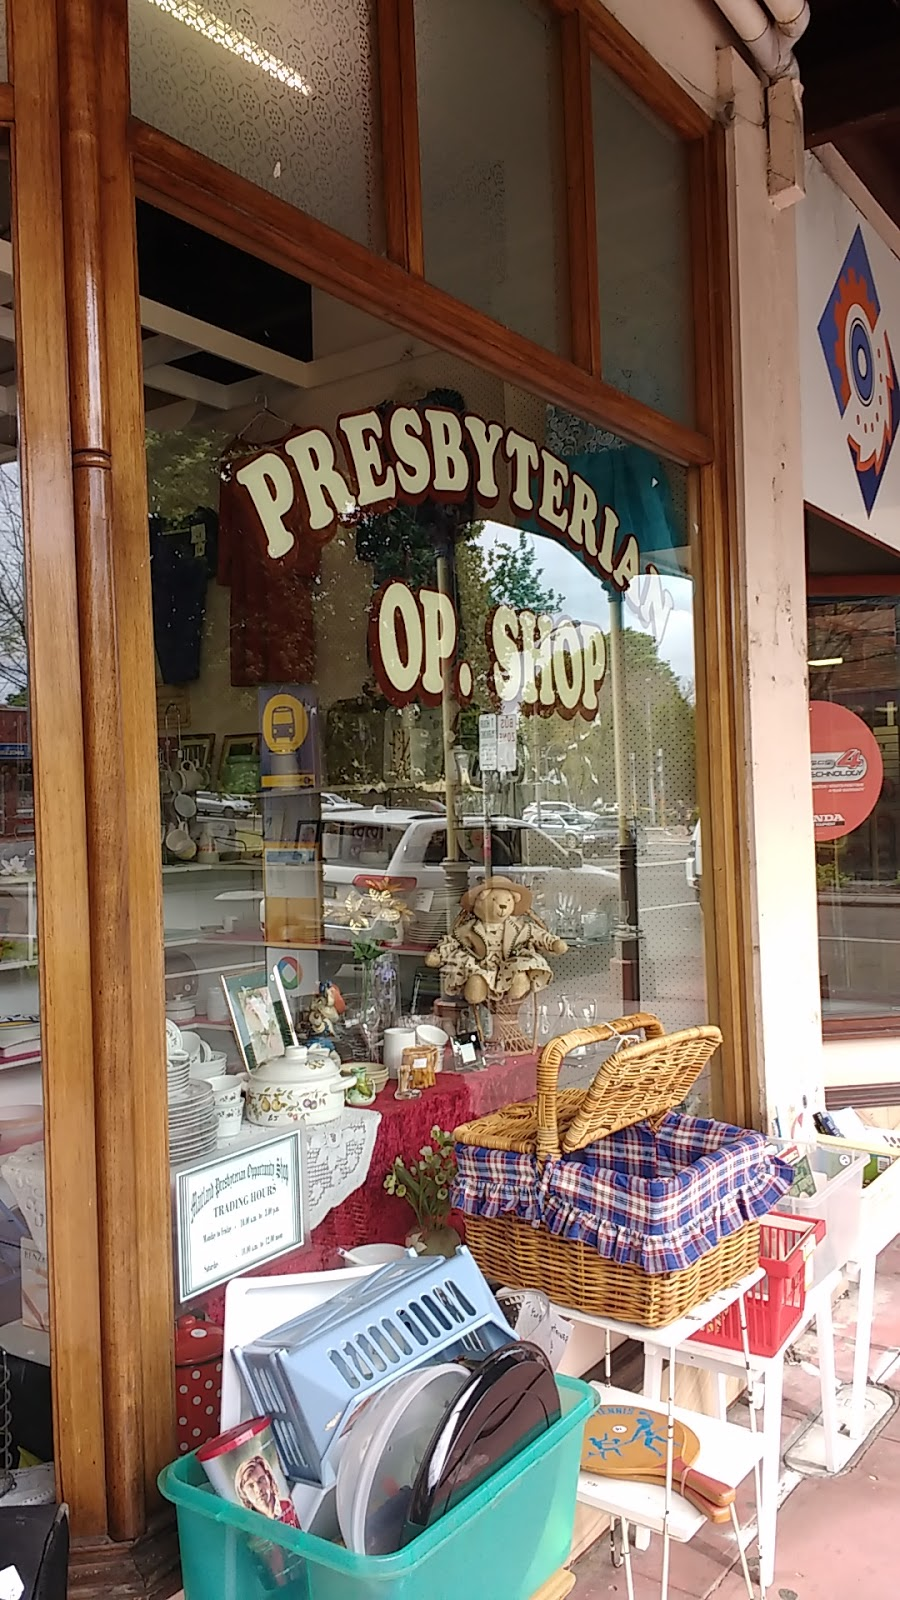 Presbyterian Opportunity Shop | store | 501 High St, Maitland NSW 2320, Australia | 0249343870 OR +61 2 4934 3870